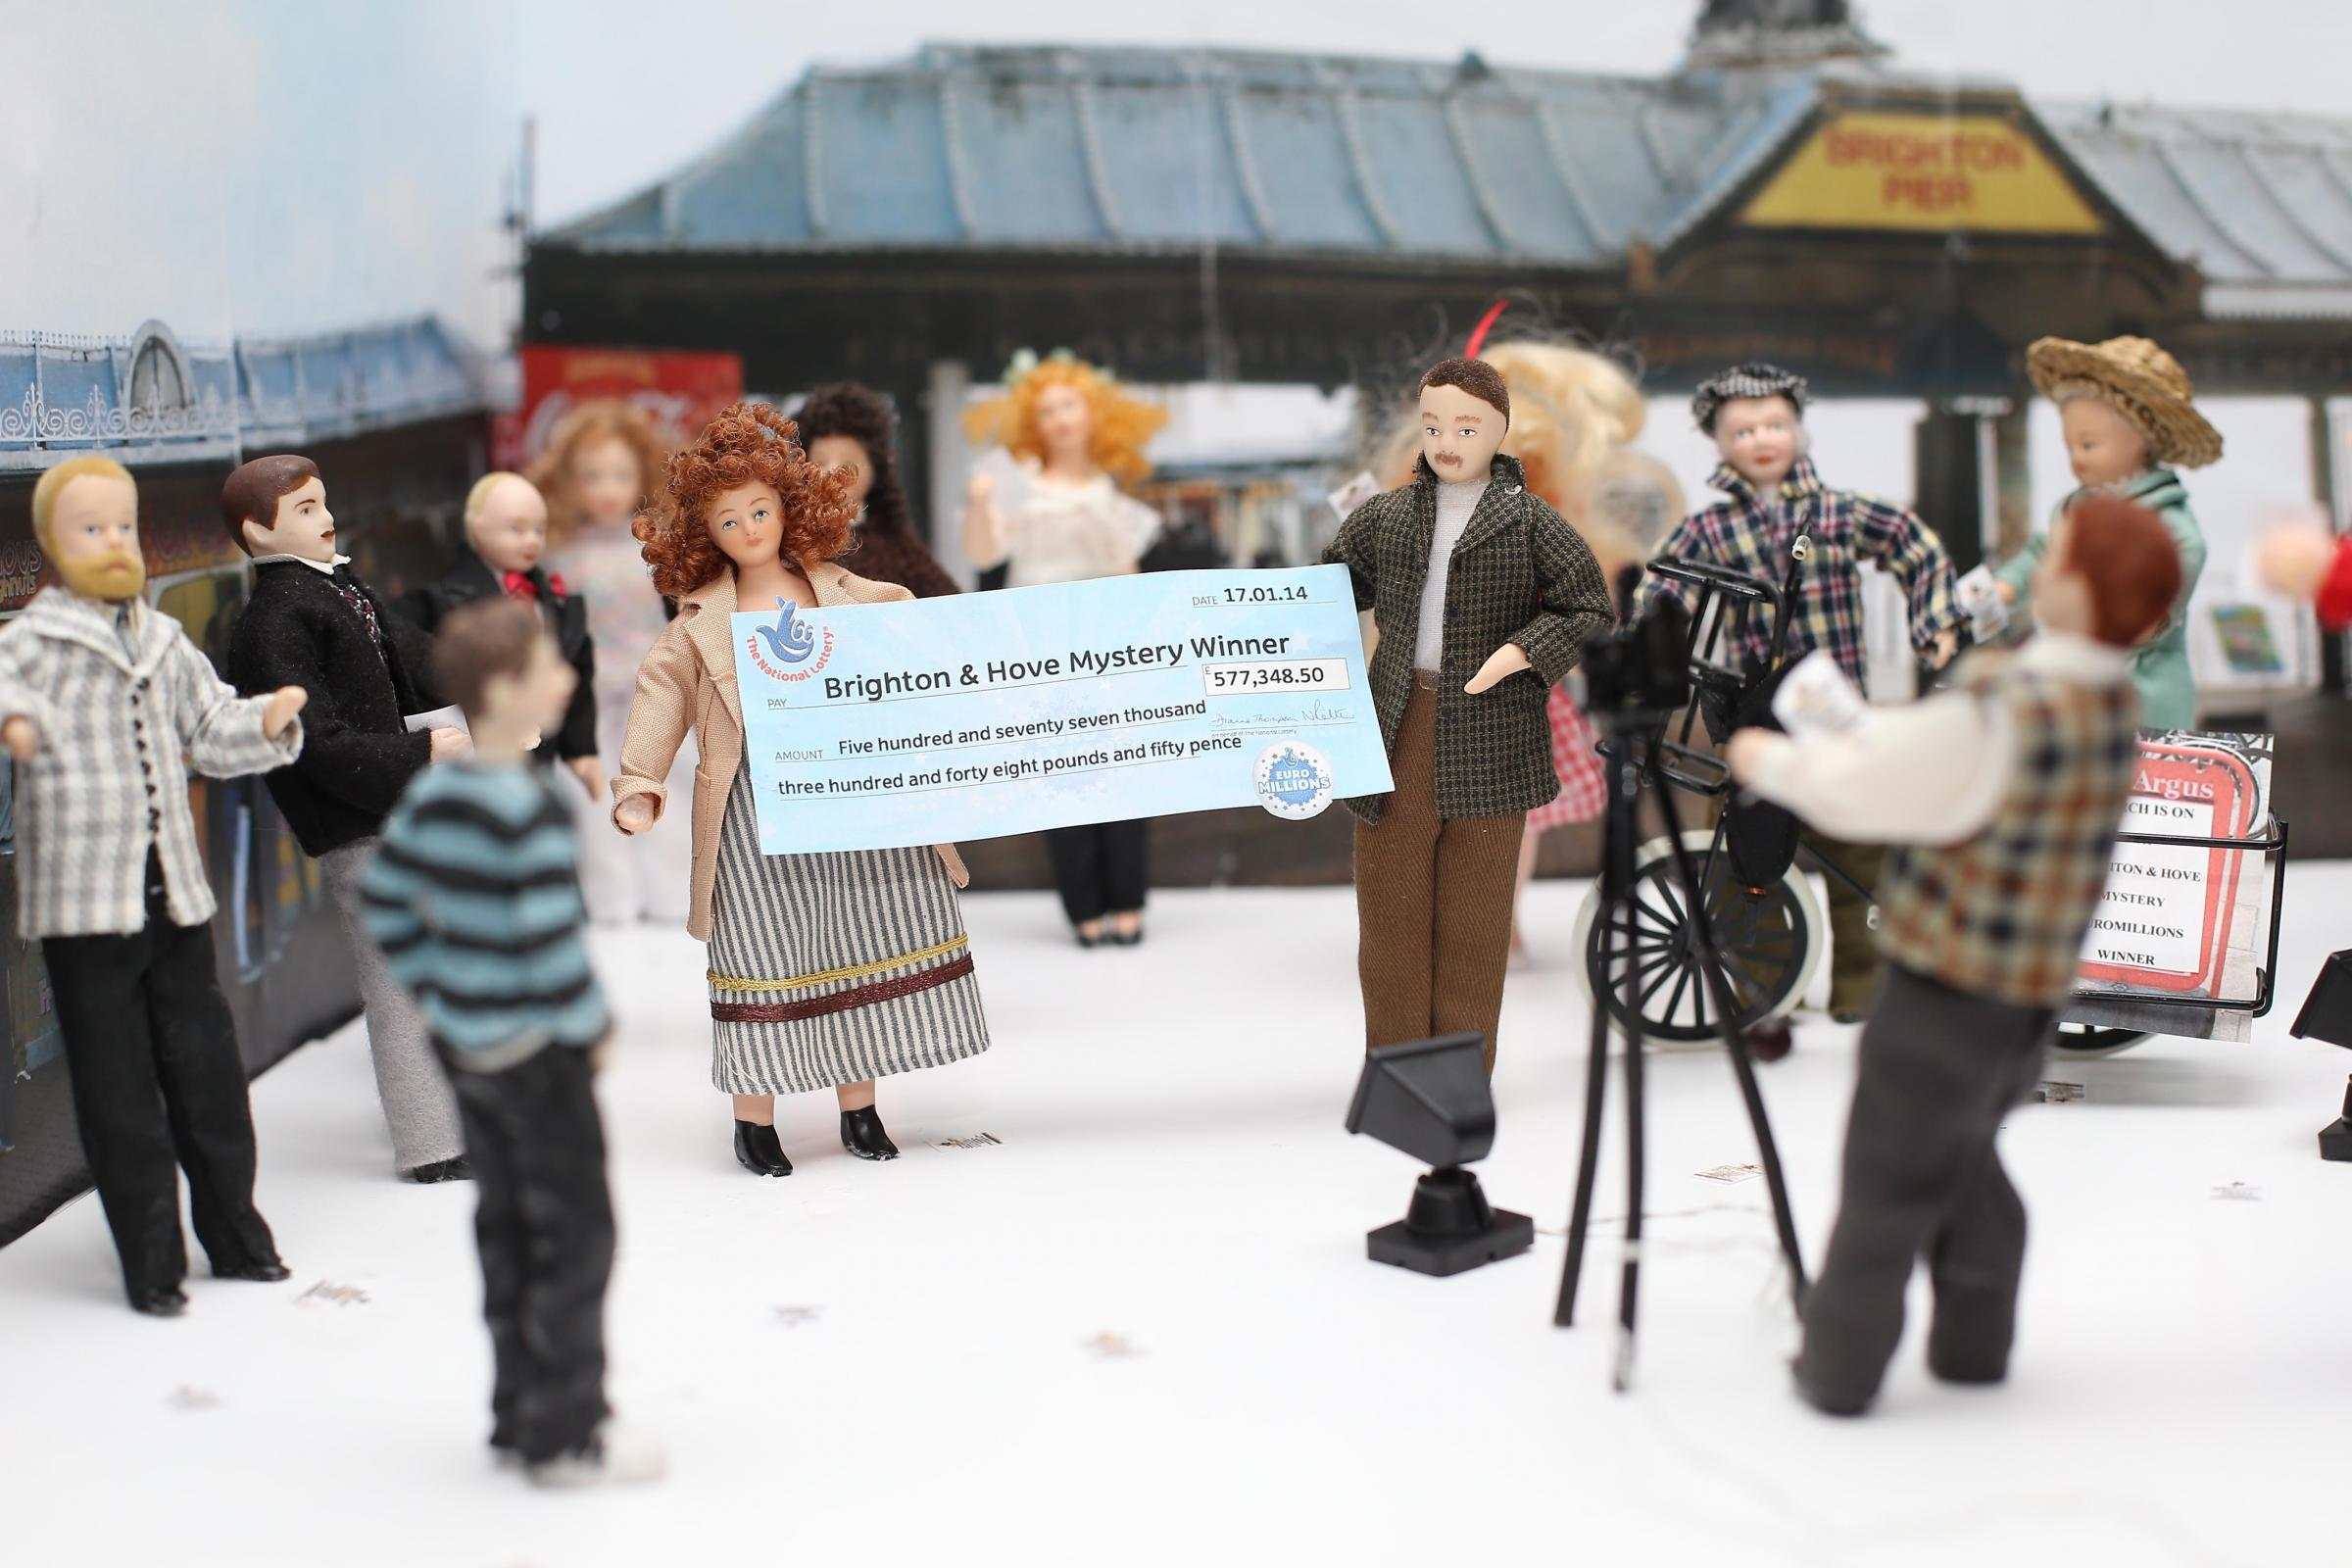 Half million jackpot mystery winner portrayed at Brighton Model World